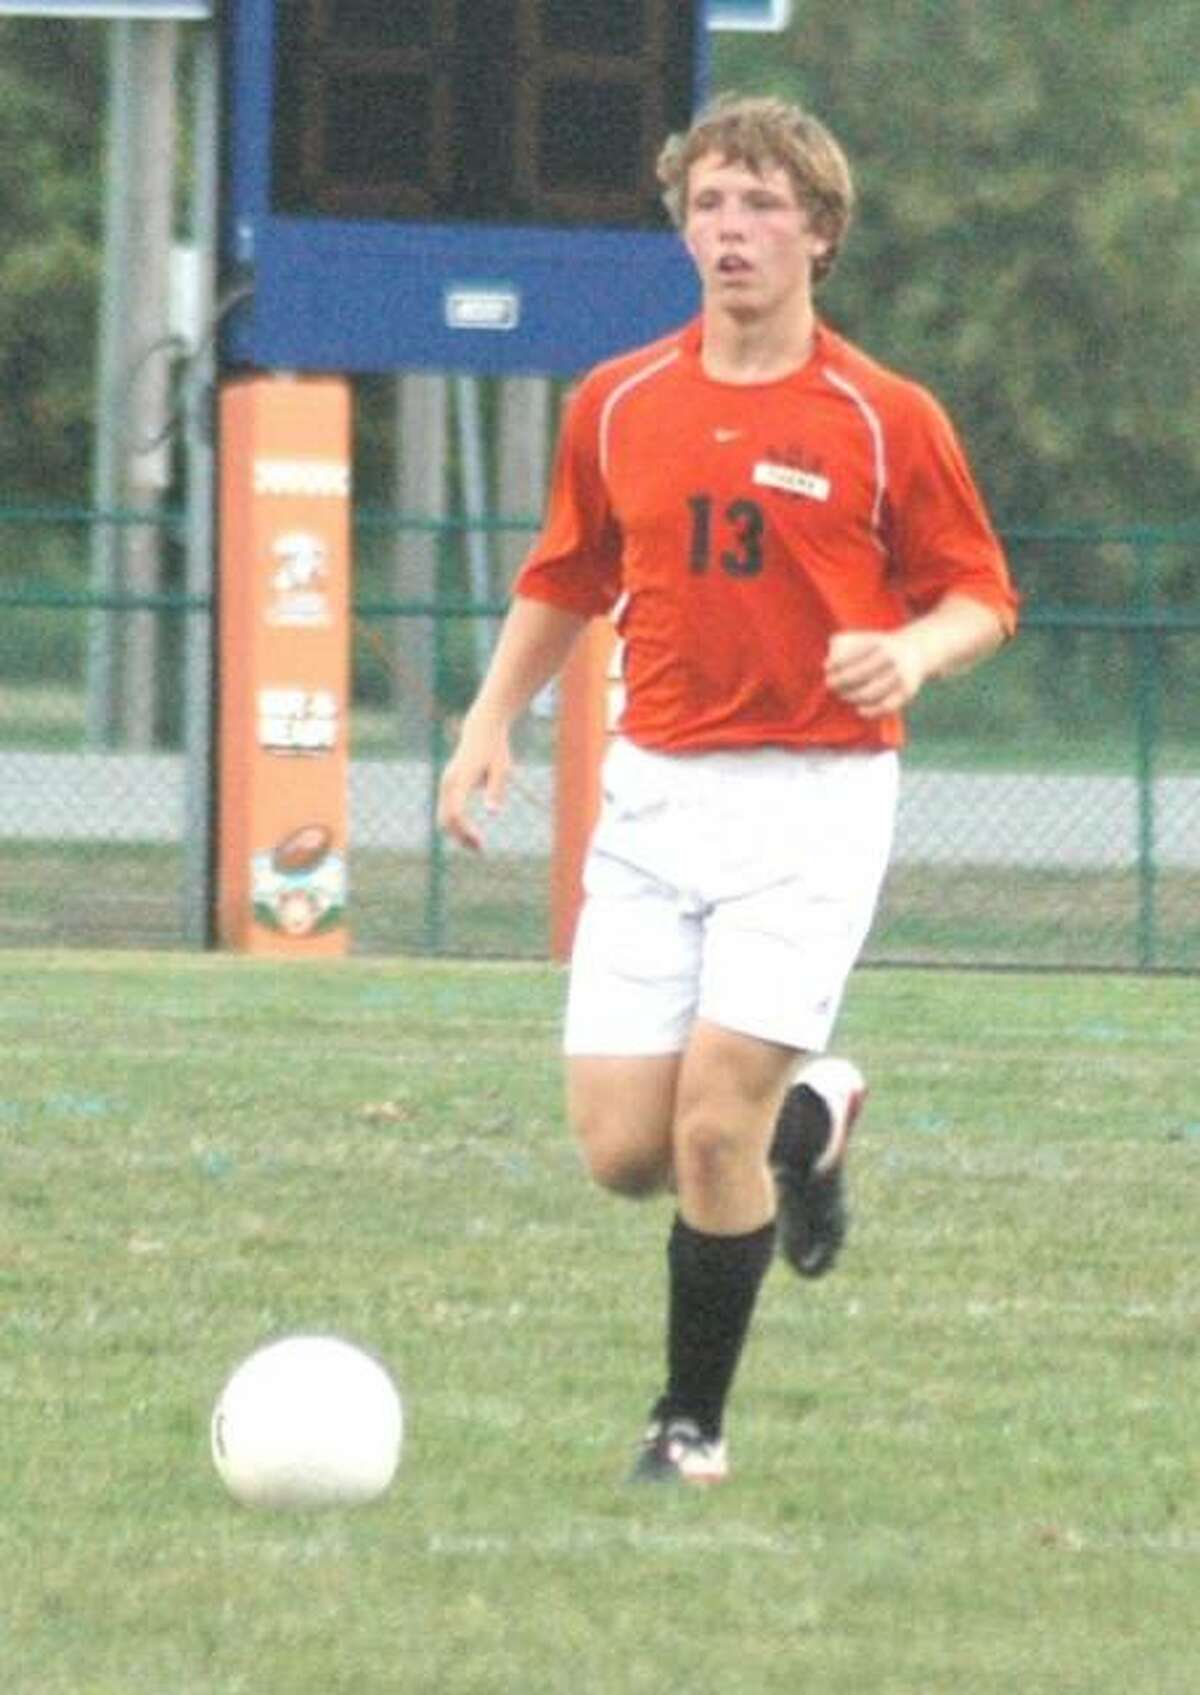 A three-year starter on the backline, Robbie Tays was an All-State and All-Southwestern Conference player as a senior after helping the Tigers advance to the state tournament in his first two seasons as a sophomore and junior.